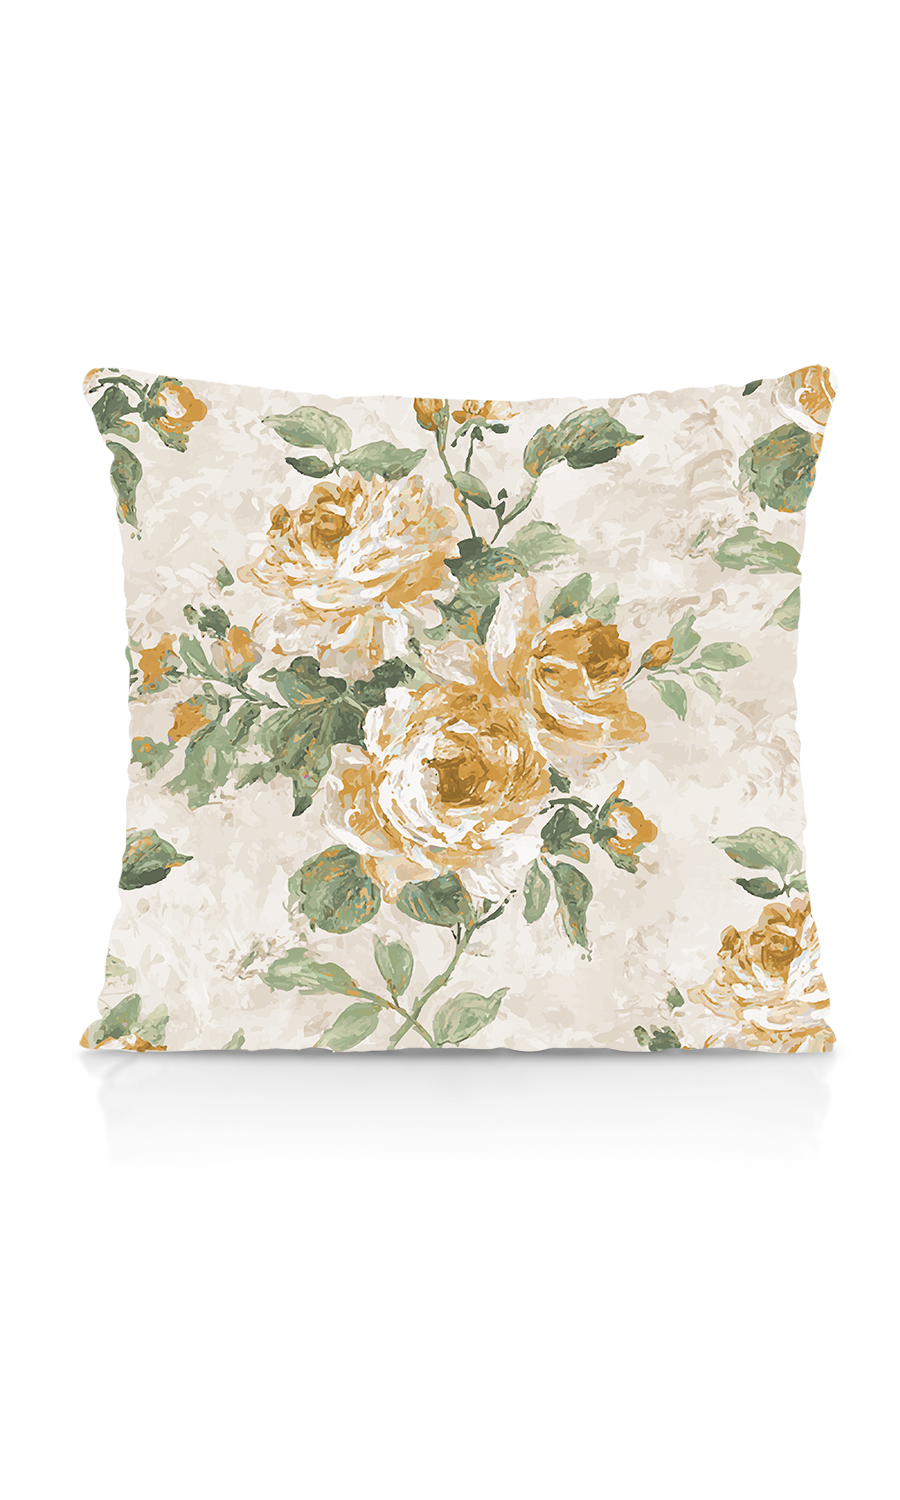 Printed Floral Custom Knife Edge Cushions